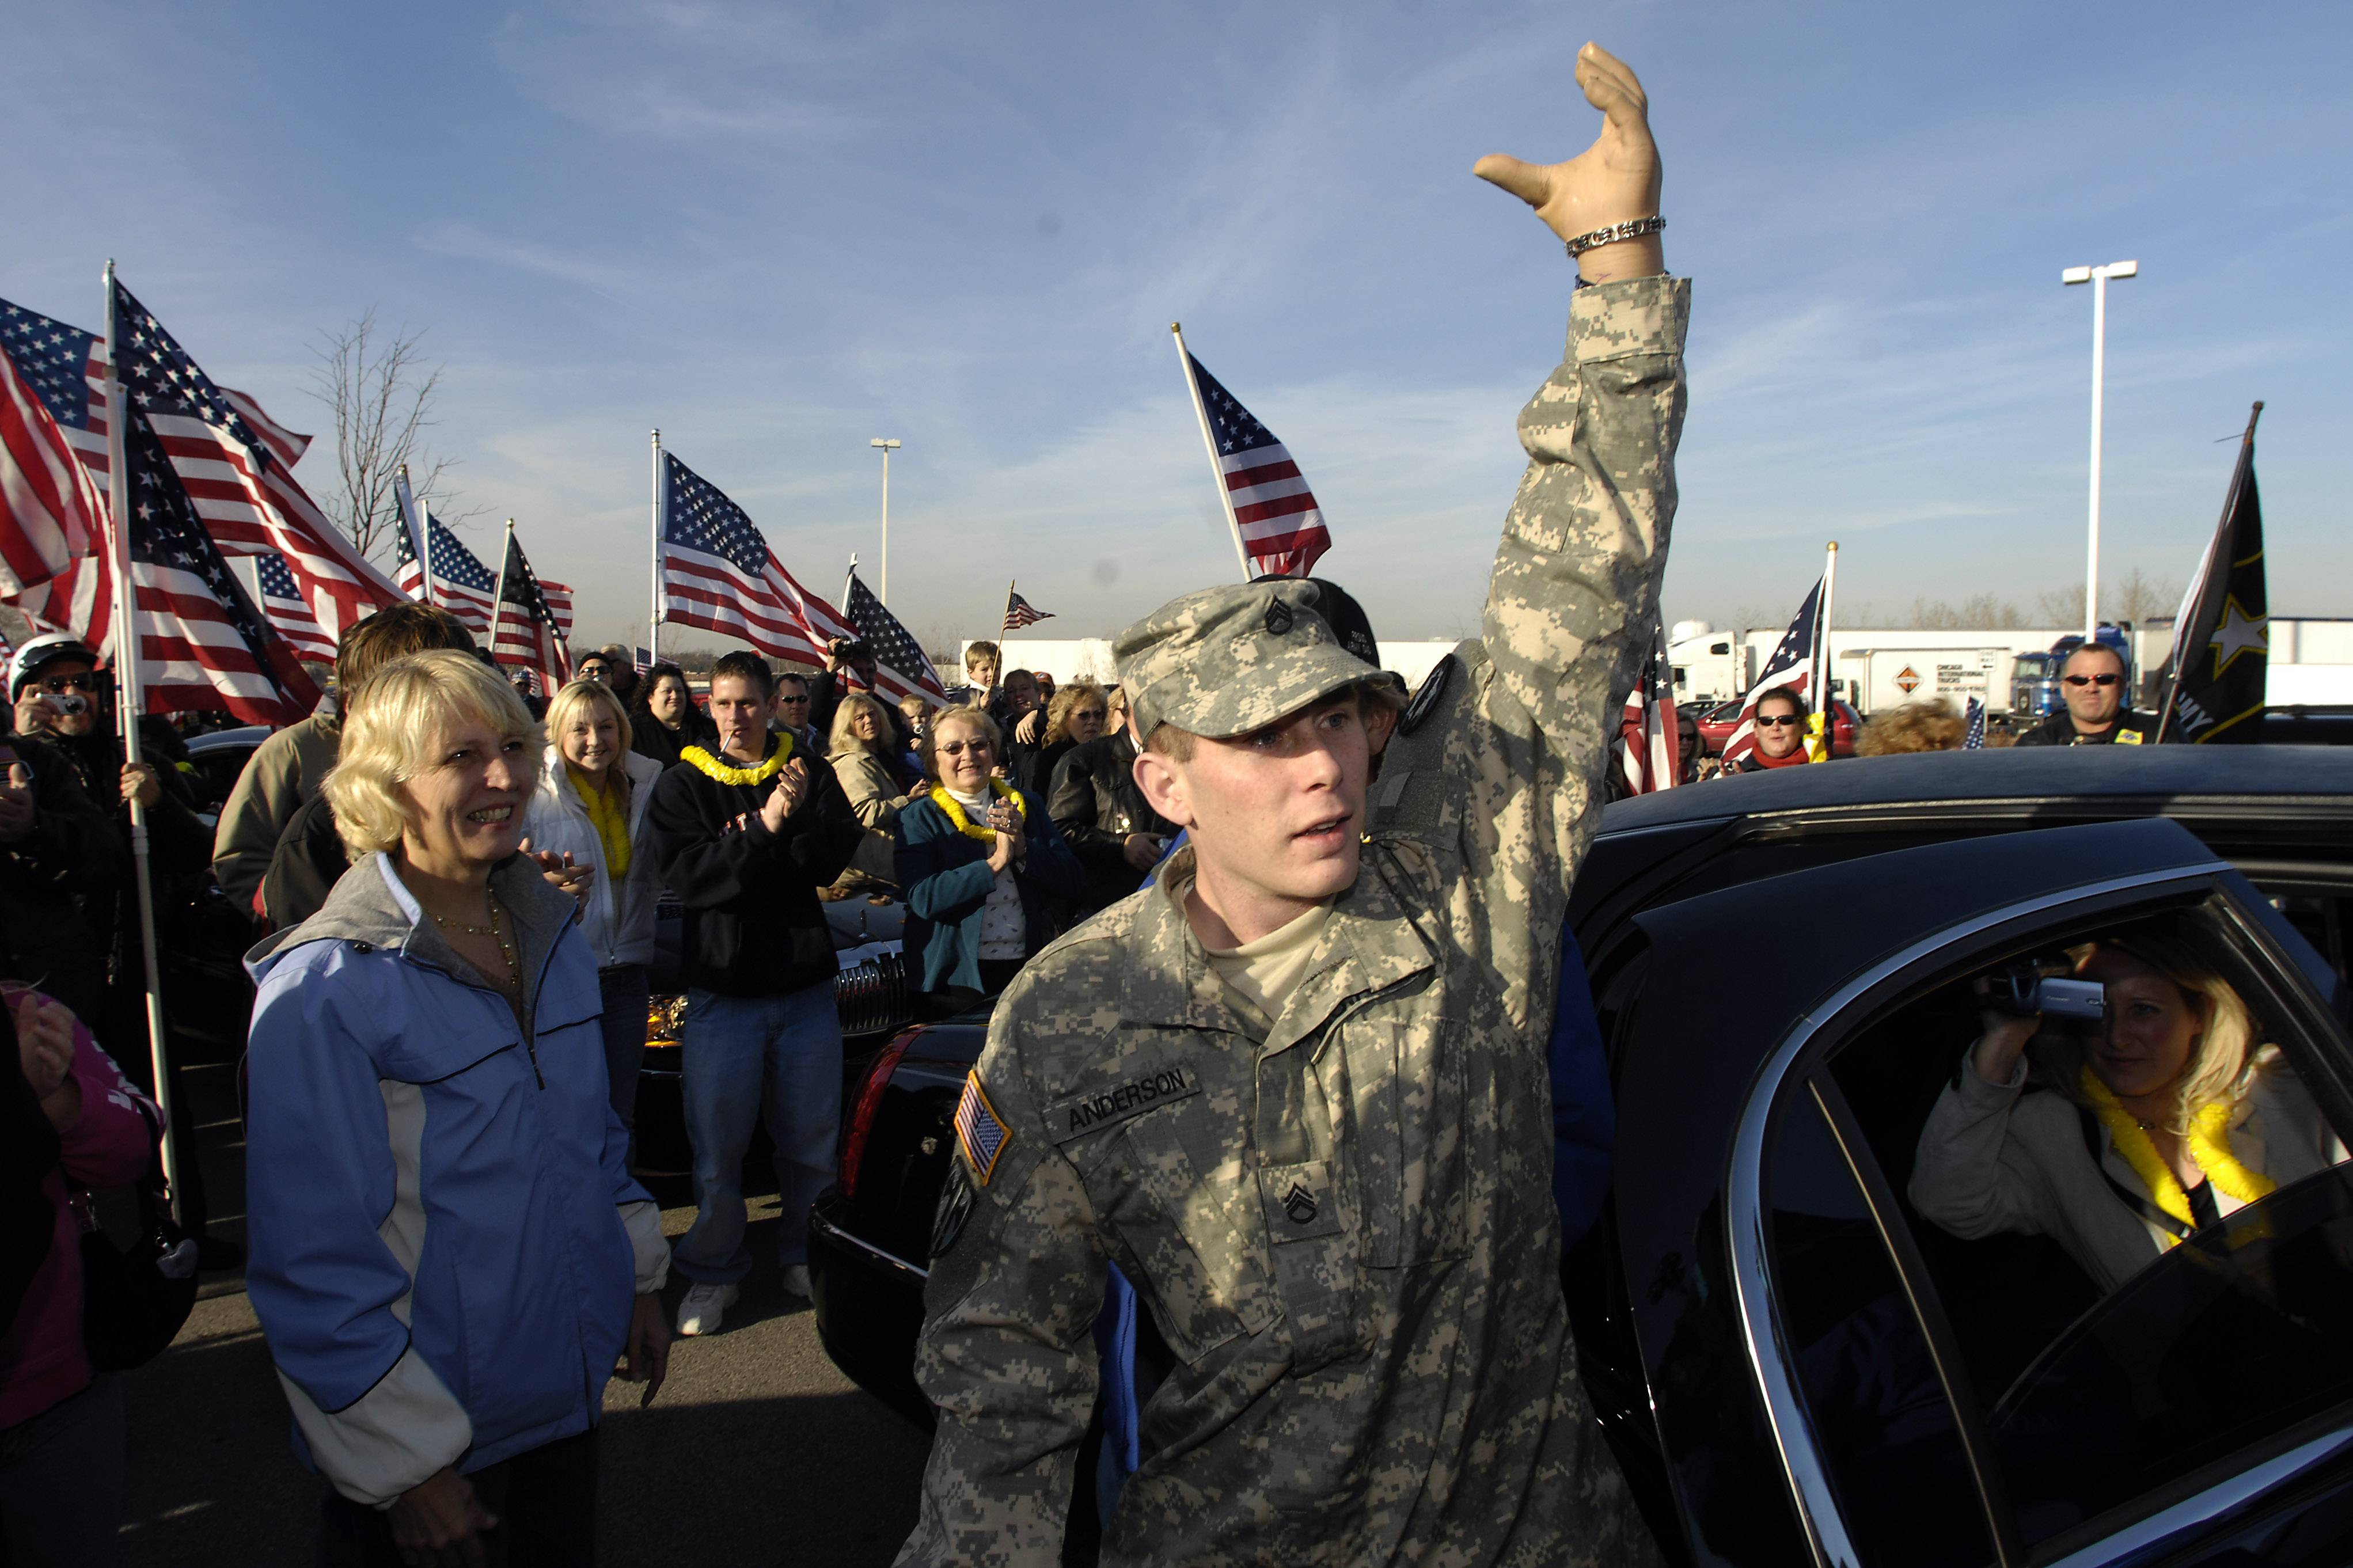 Rolling Meadows resident Bryan Anderson returns home to a heroes welcome as his parents and friends meet up with the Patriot Guard Riders at the Des Plaines Oasis. Here Bryan greets the crowd as he emerges from the limo.